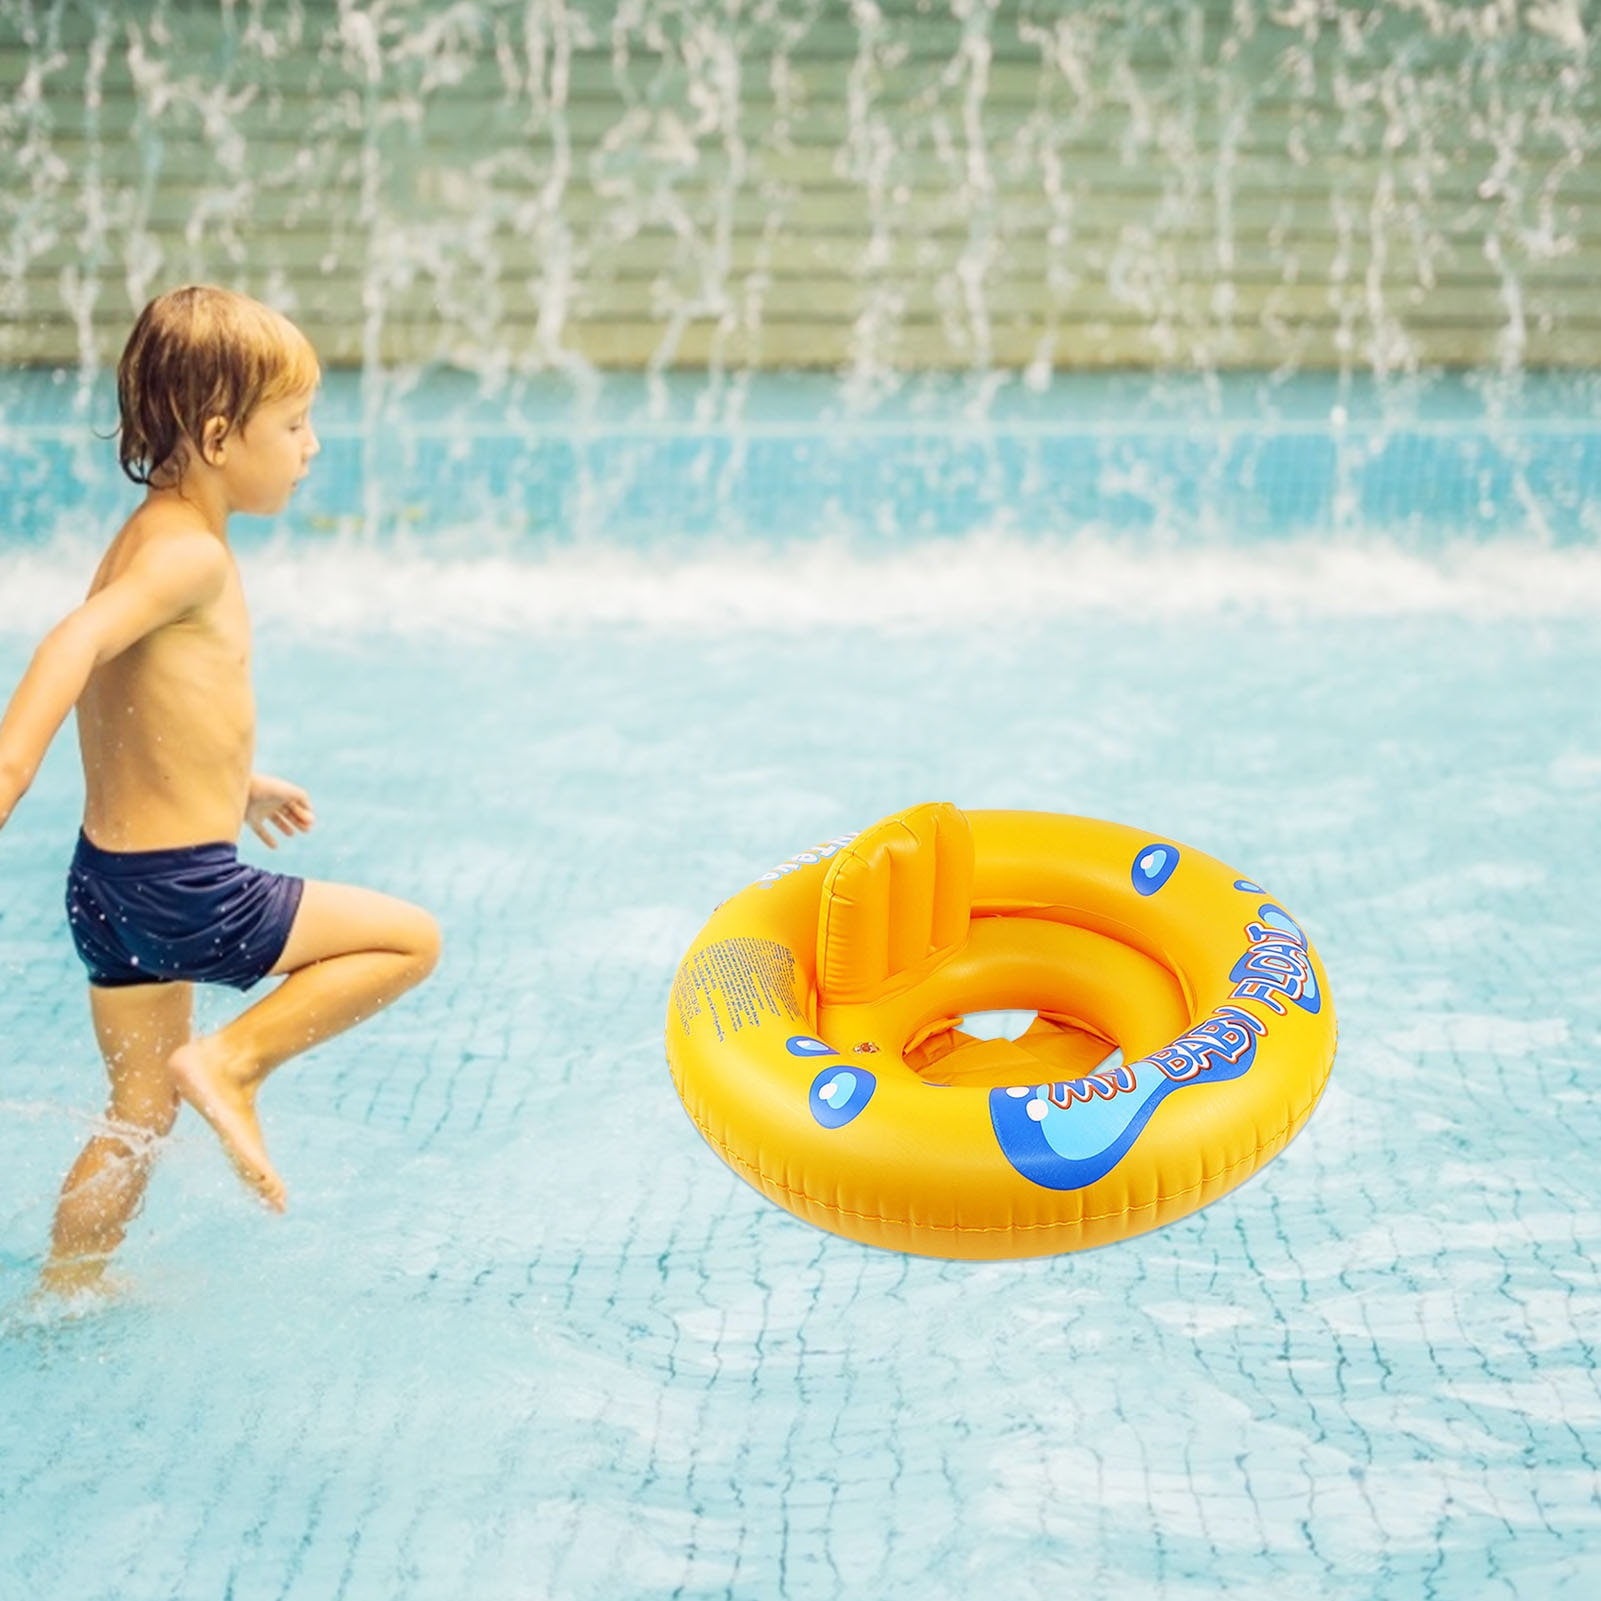 2017 new high quality safety baby need not inflatable floating ring round the neck round floating ring toy baby swimming pool New Summer children's baby floating ring inflatable round swimming seat cartoon swimming ring outdoor swimming pool toy #